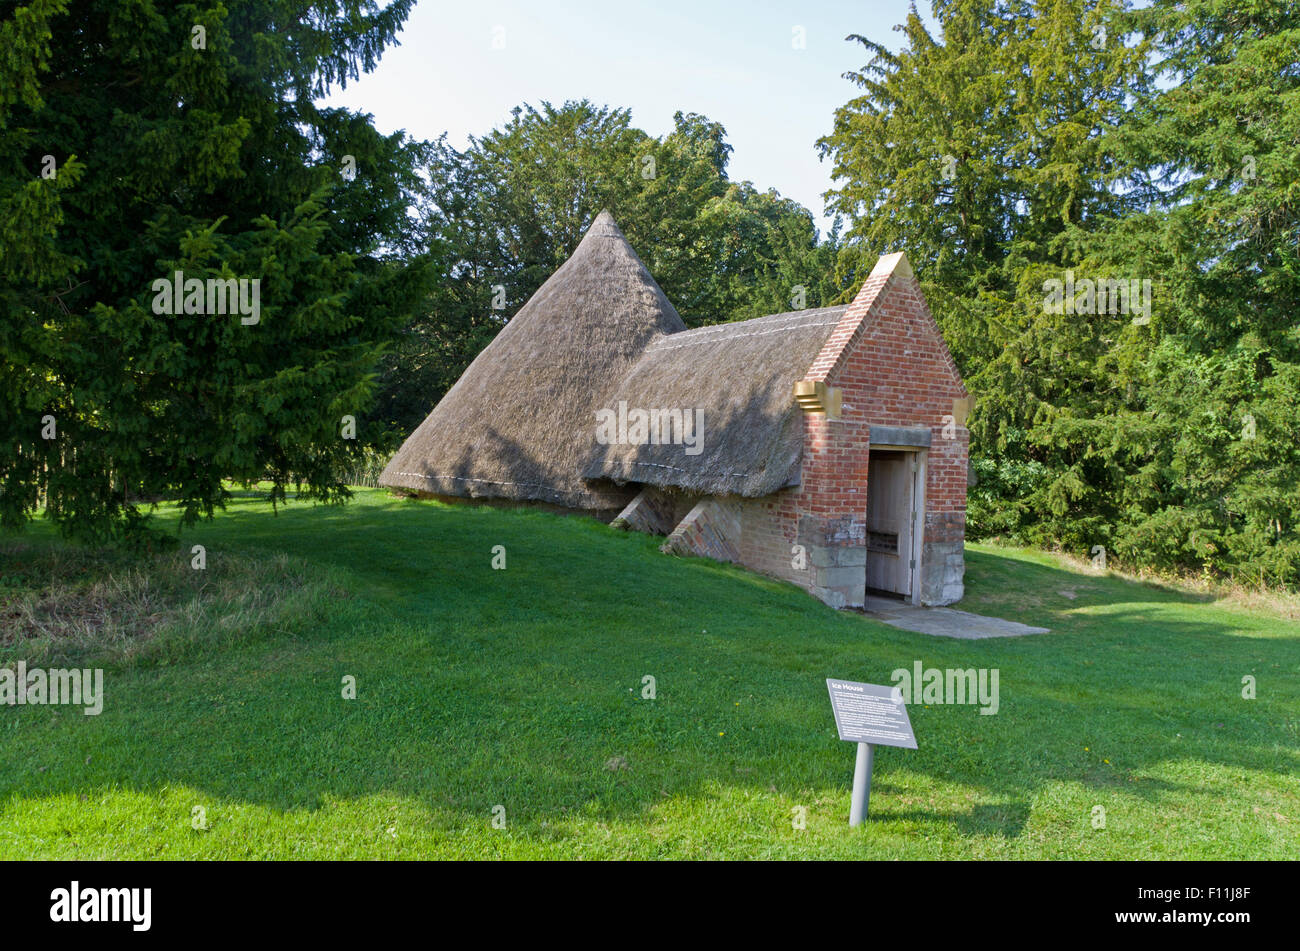 The historic 18th century ice house in the grounds of Compton Verney House, Warwickshire. - Stock Image